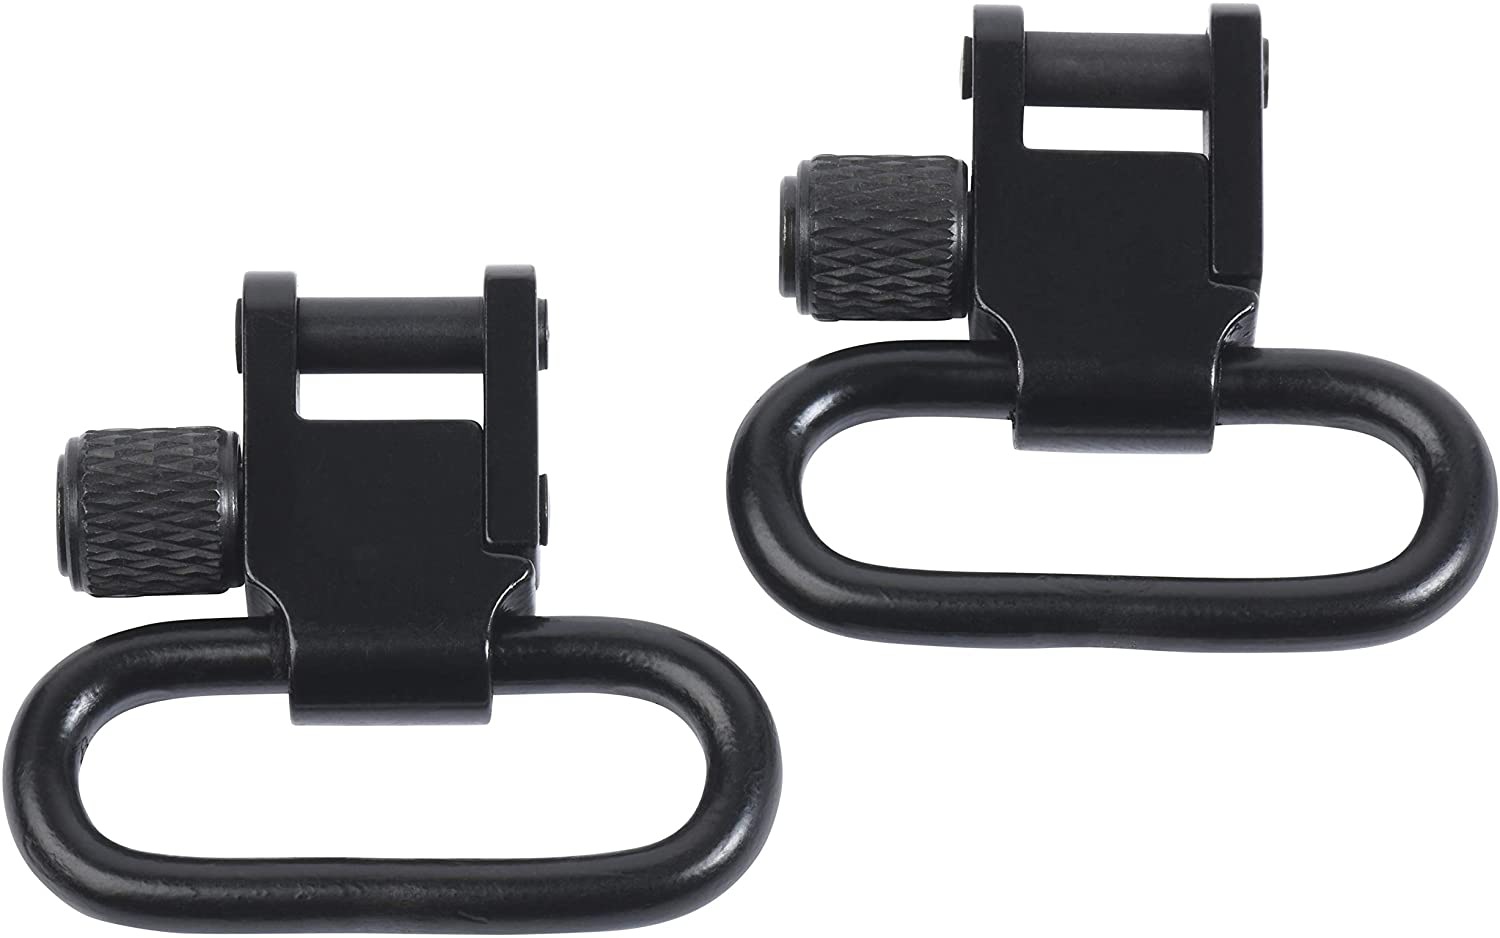 Detroit Mail order cheap Leather Shop Pair of 1 Inch Gun free A Sling Swivels Tri-Lock